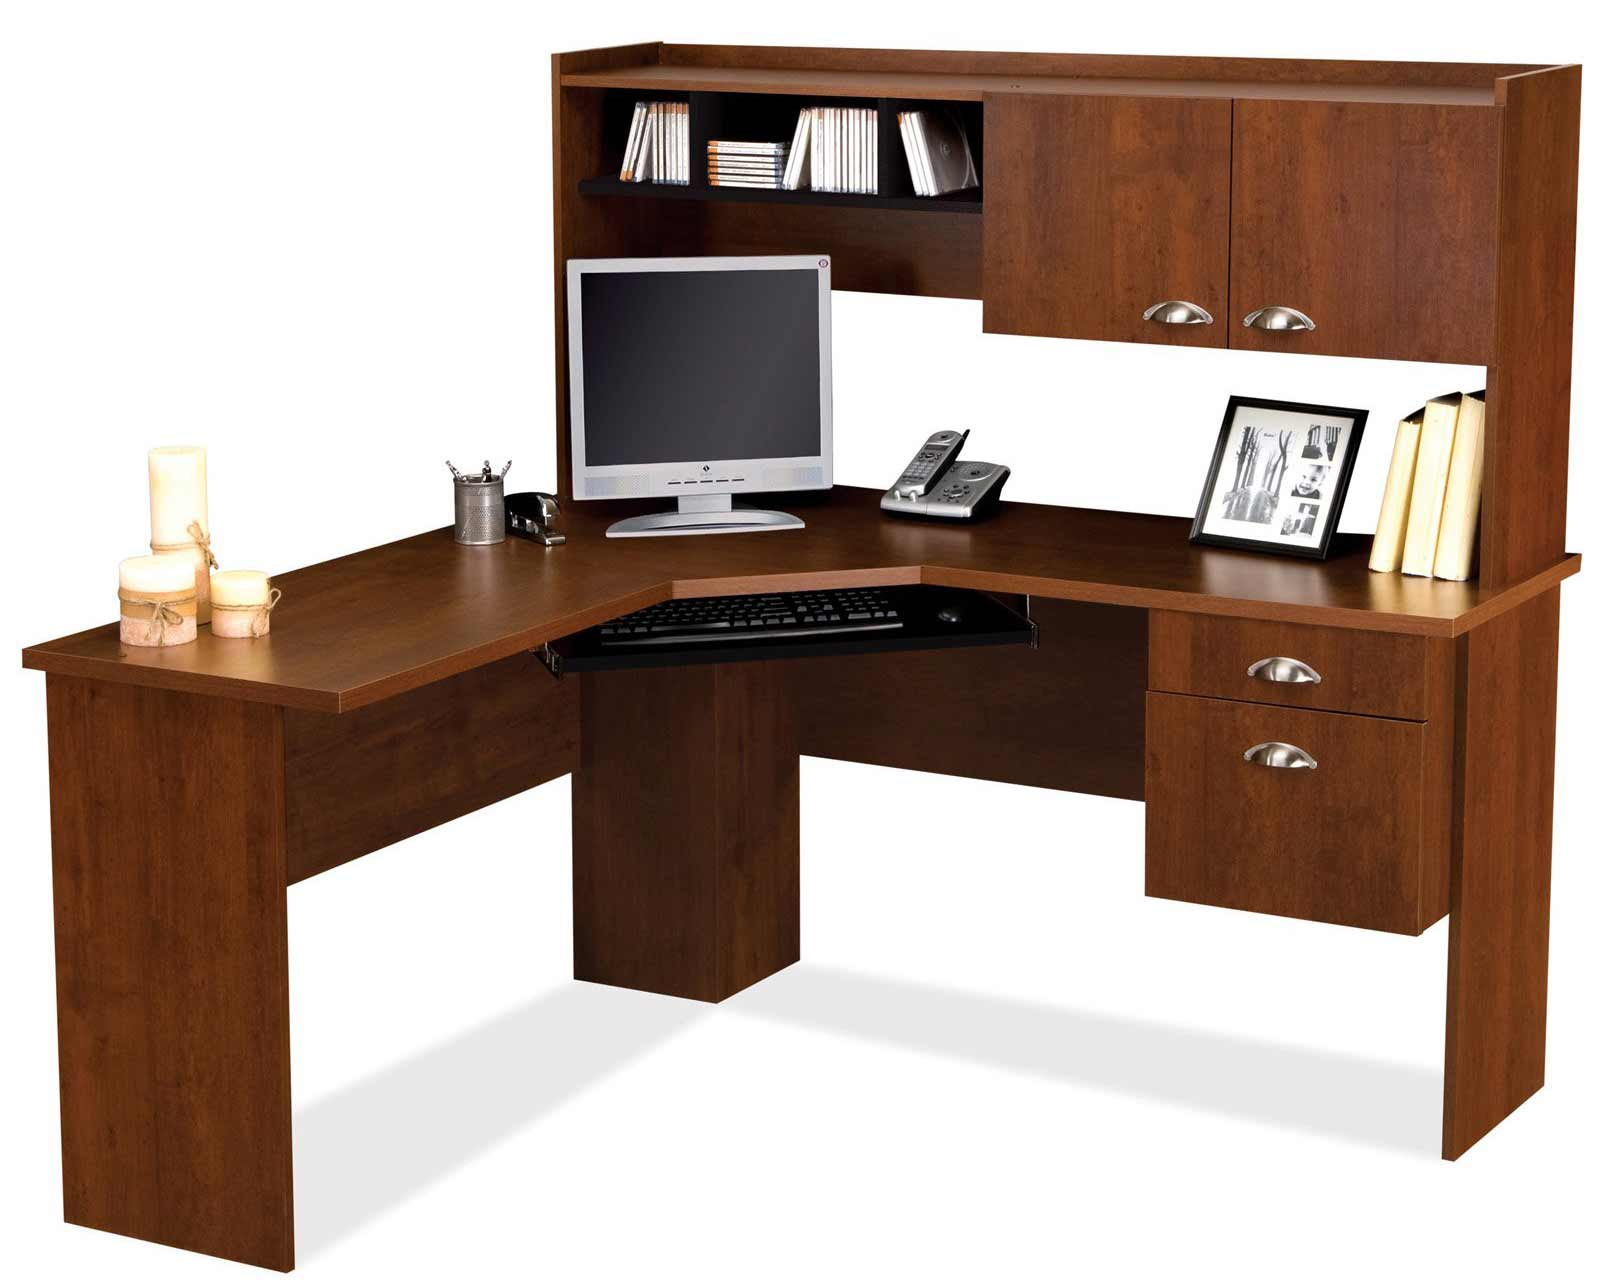 wooden l shaped desk with hutch plus drawer and computer stand ideas plus computer set and books